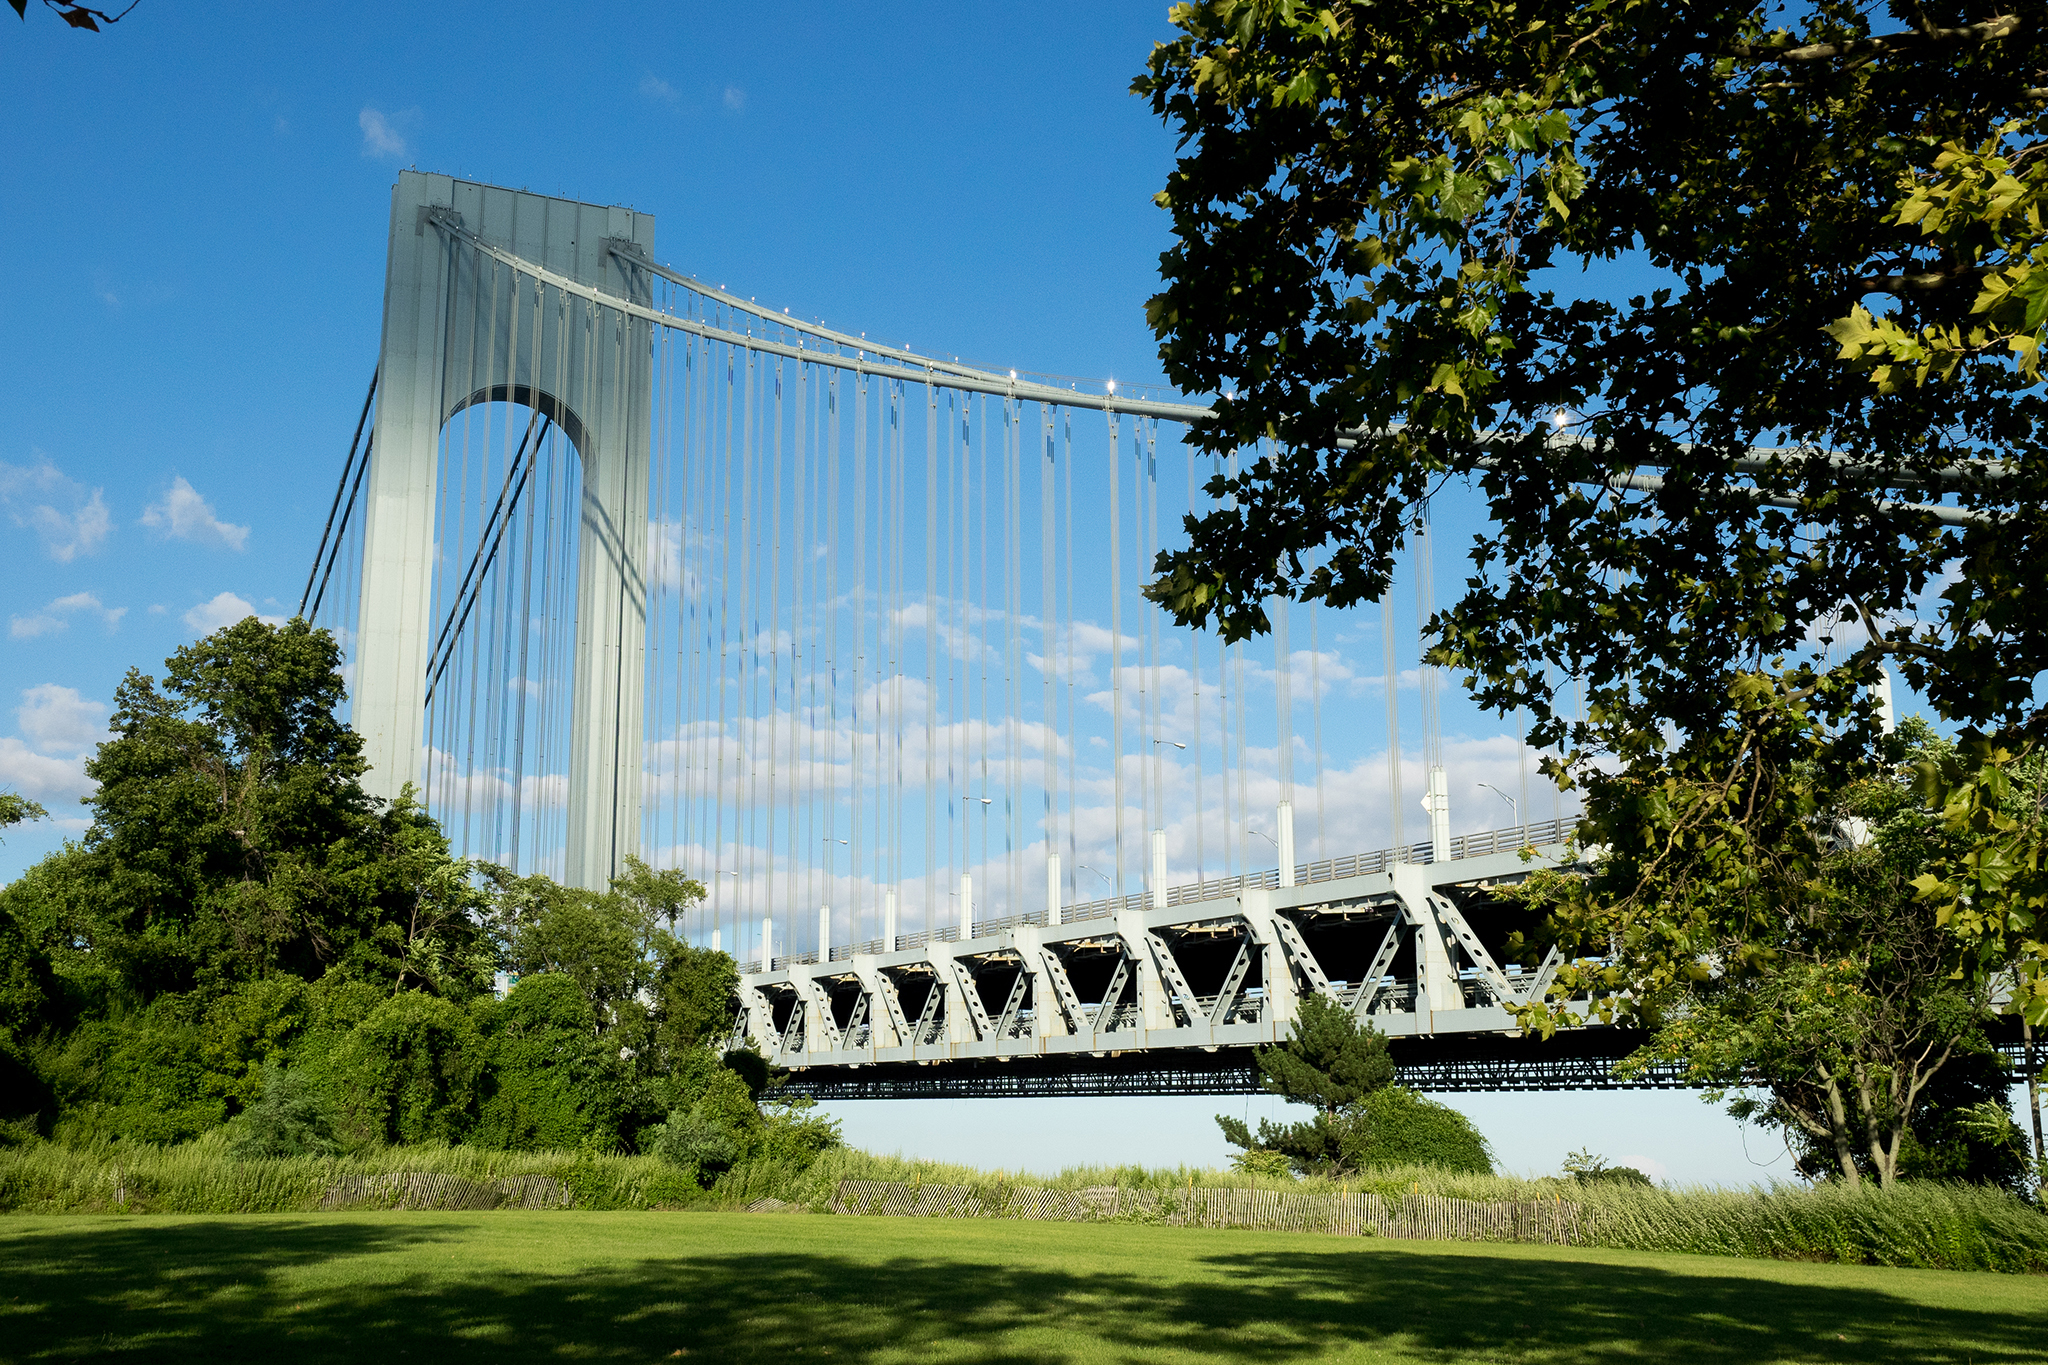 13 strange things you probably didn't know about Staten Island